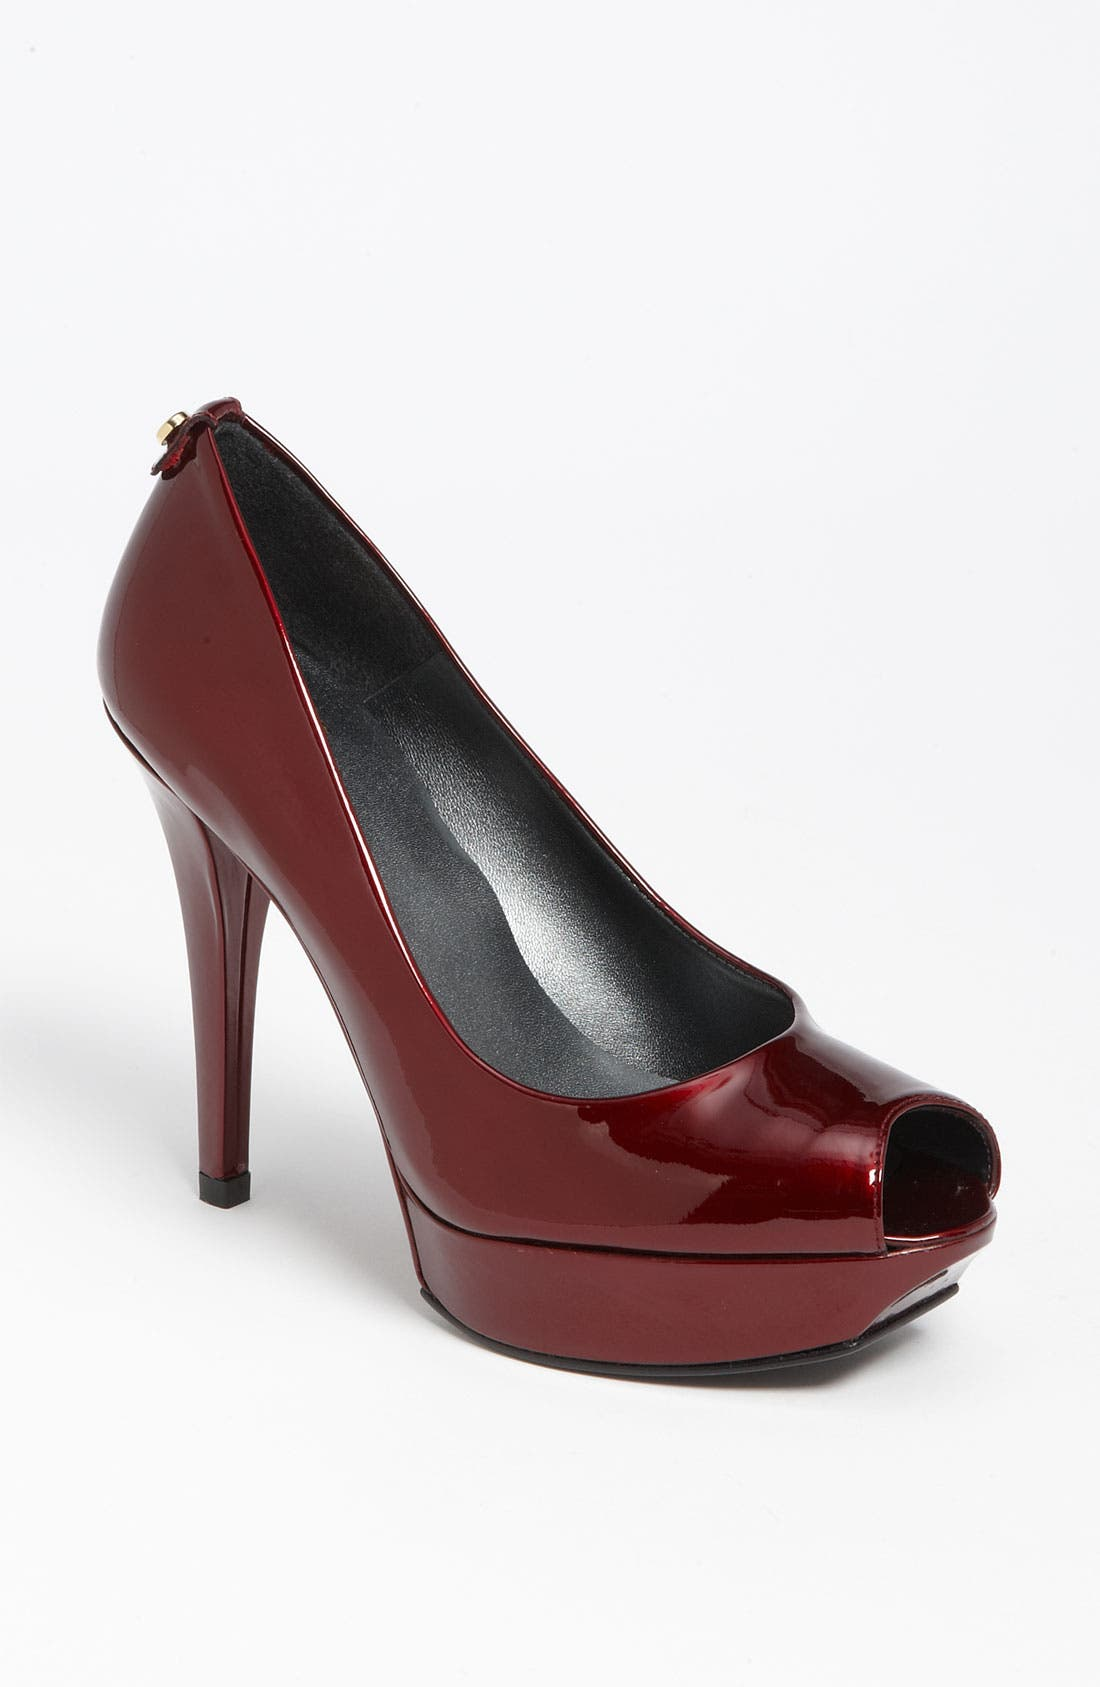 Main Image - Stuart Weitzman 'Stage' Pump (Nordstrom Exclusive)